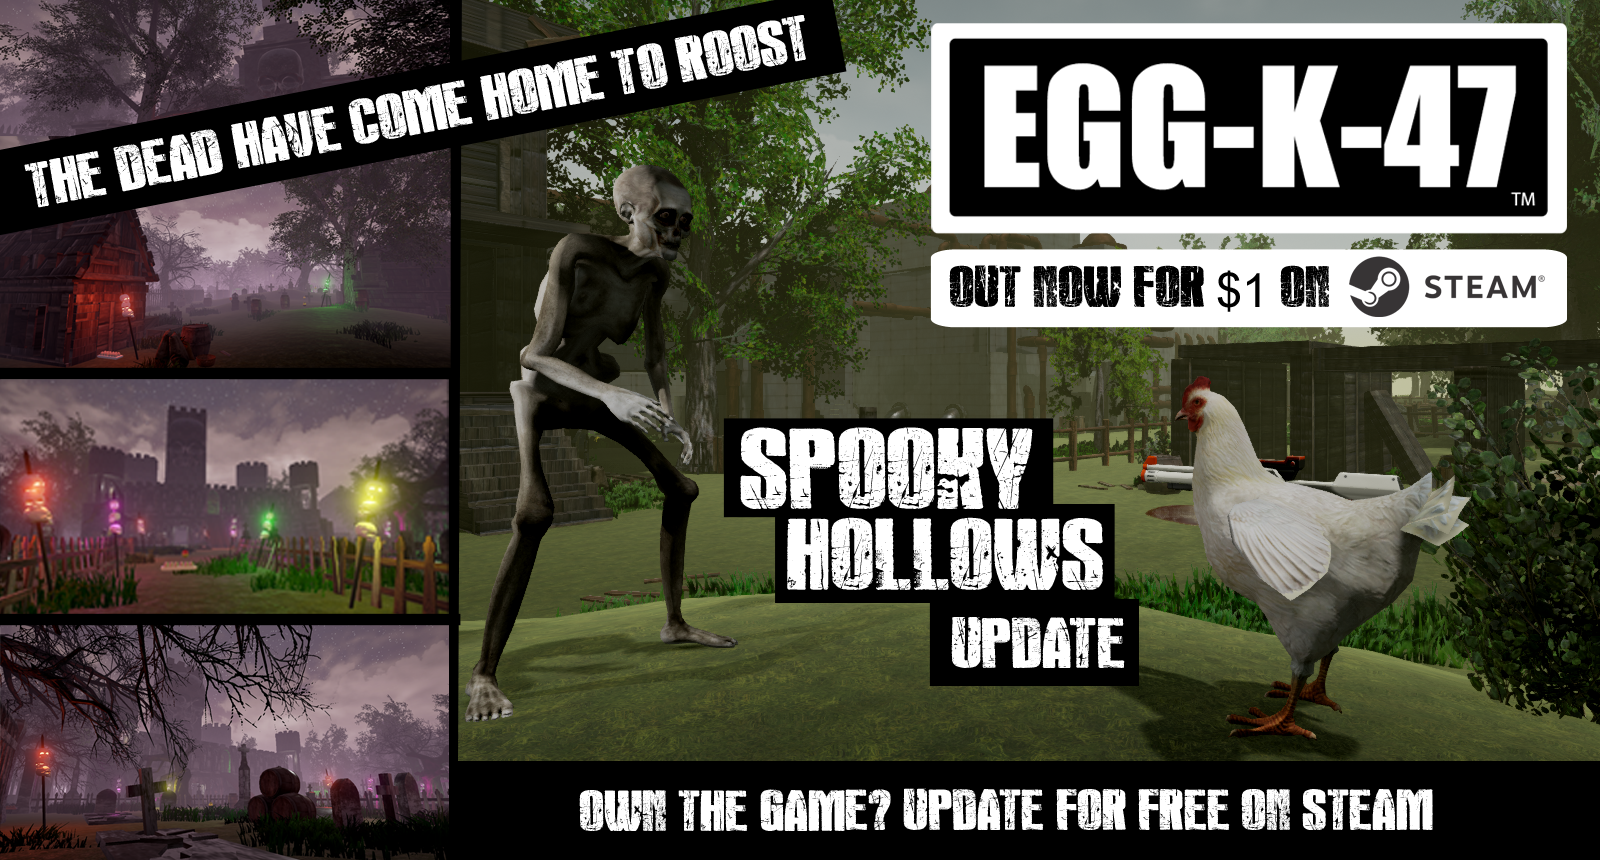 EGGK47 SPOOKY HOLLOWS AD 1 copy